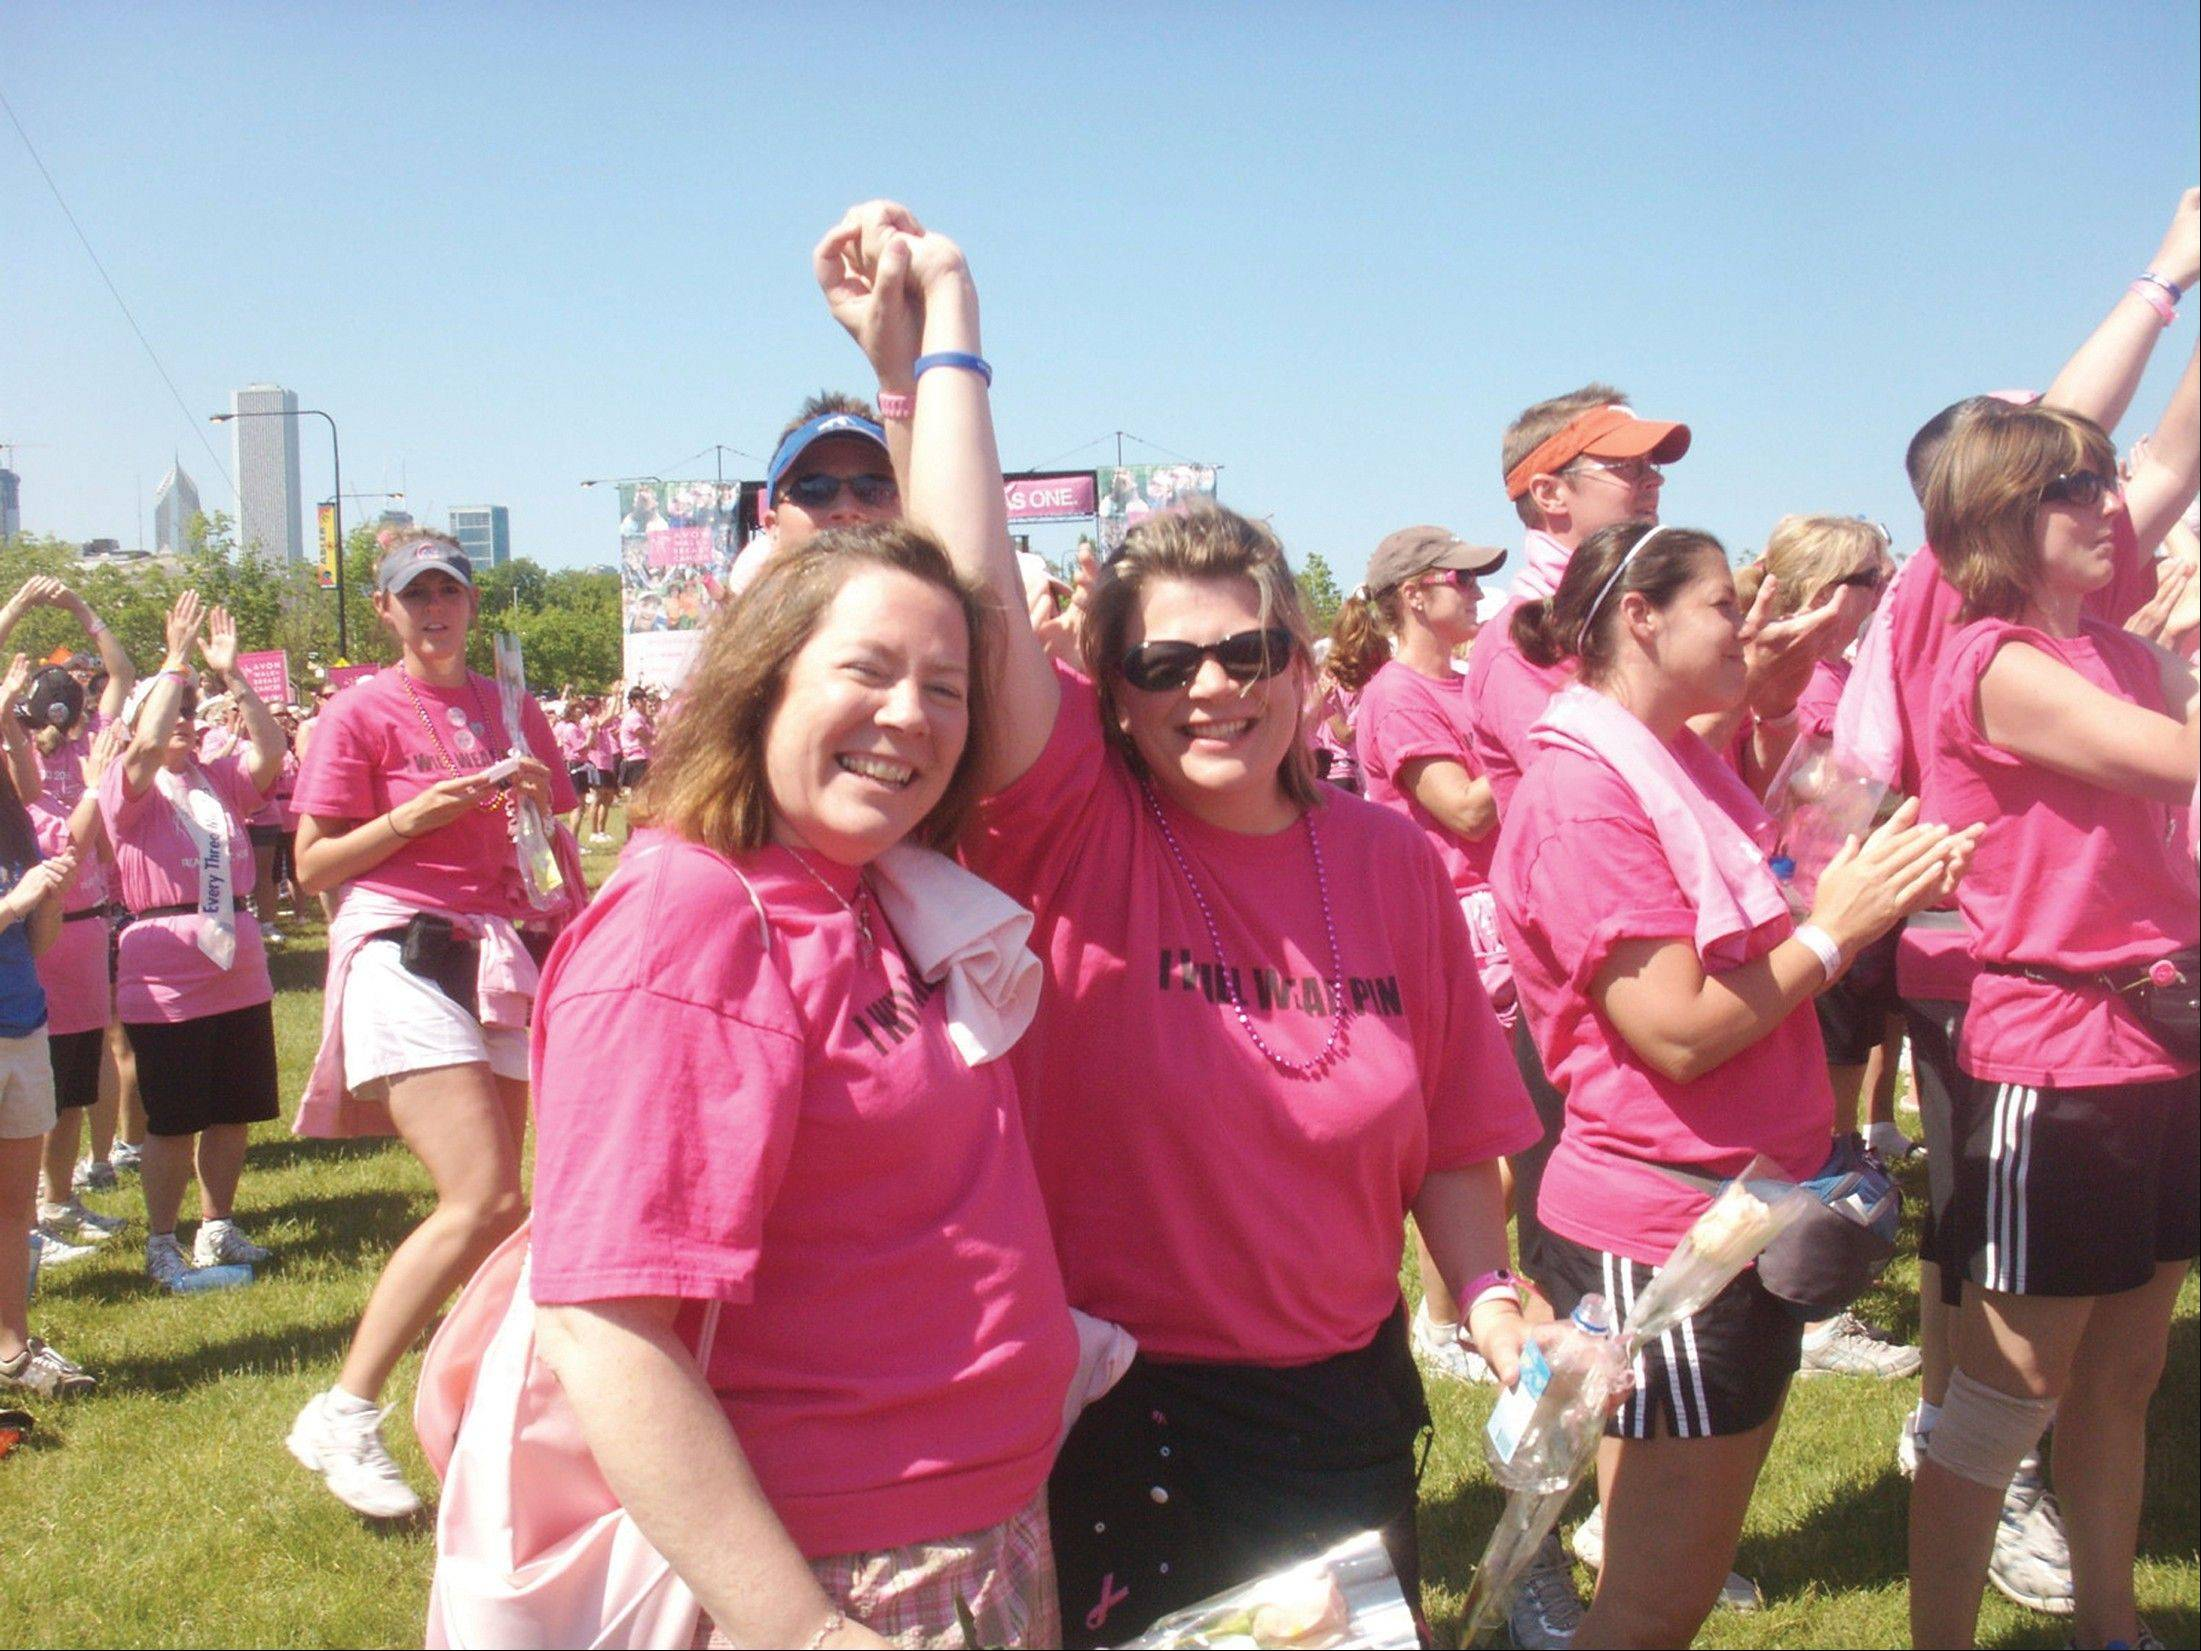 Sisters Kathleen Cecil, left, and Annie Gruber, with brother Eugene Powers behind, celebrate at the closing ceremonies of the Avon Walk for Breast Cancer in June 2009. Family members formed team Team KA-POW and have helped raise more than $650,000 in eight years for the Avon Walk. Kathleen lost her battle with breast cancer last spring, and Annie is still fighting the disease.